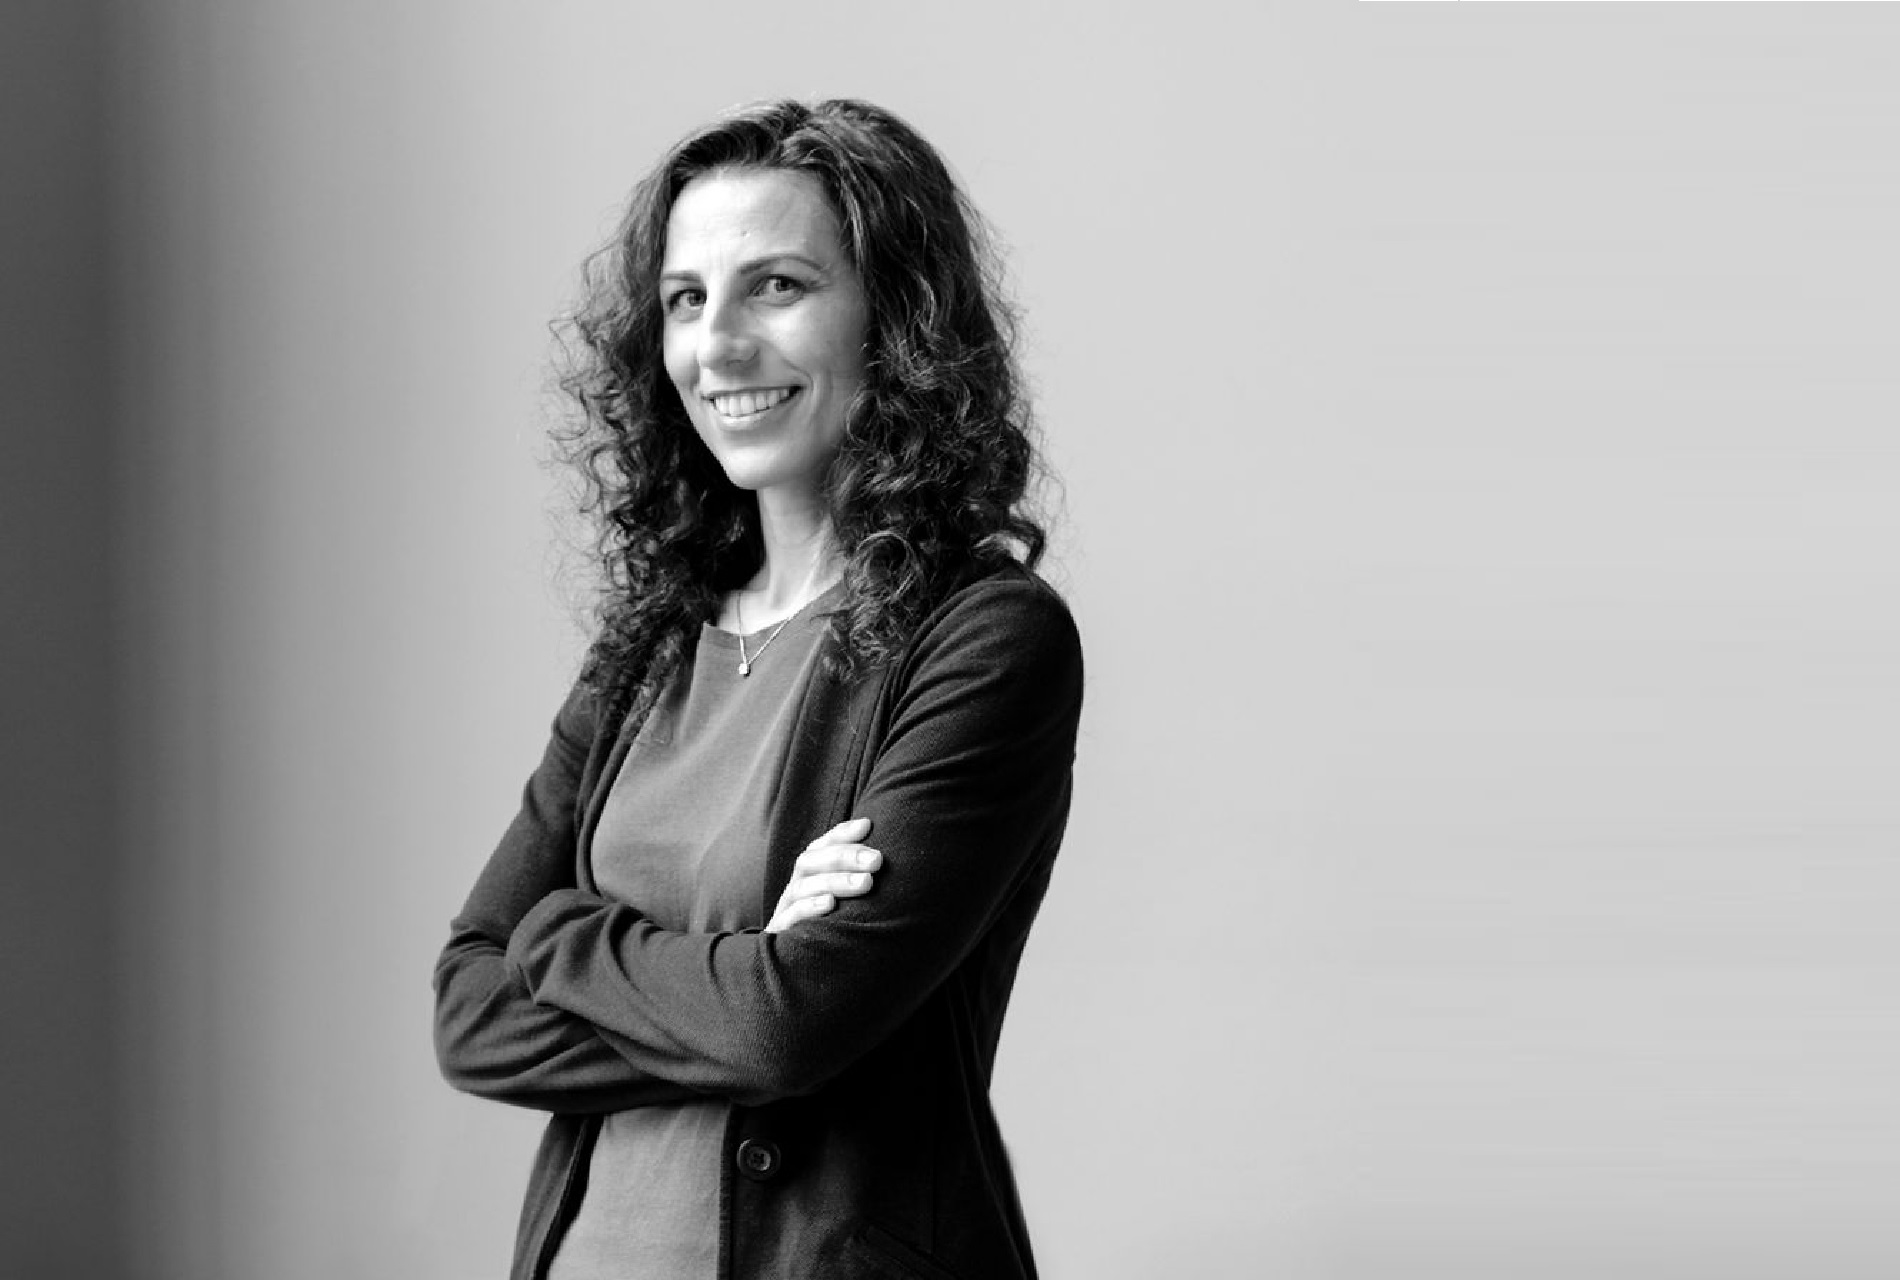 036. Francesca Gino: Culture, Ethics and The Power of Authenticity